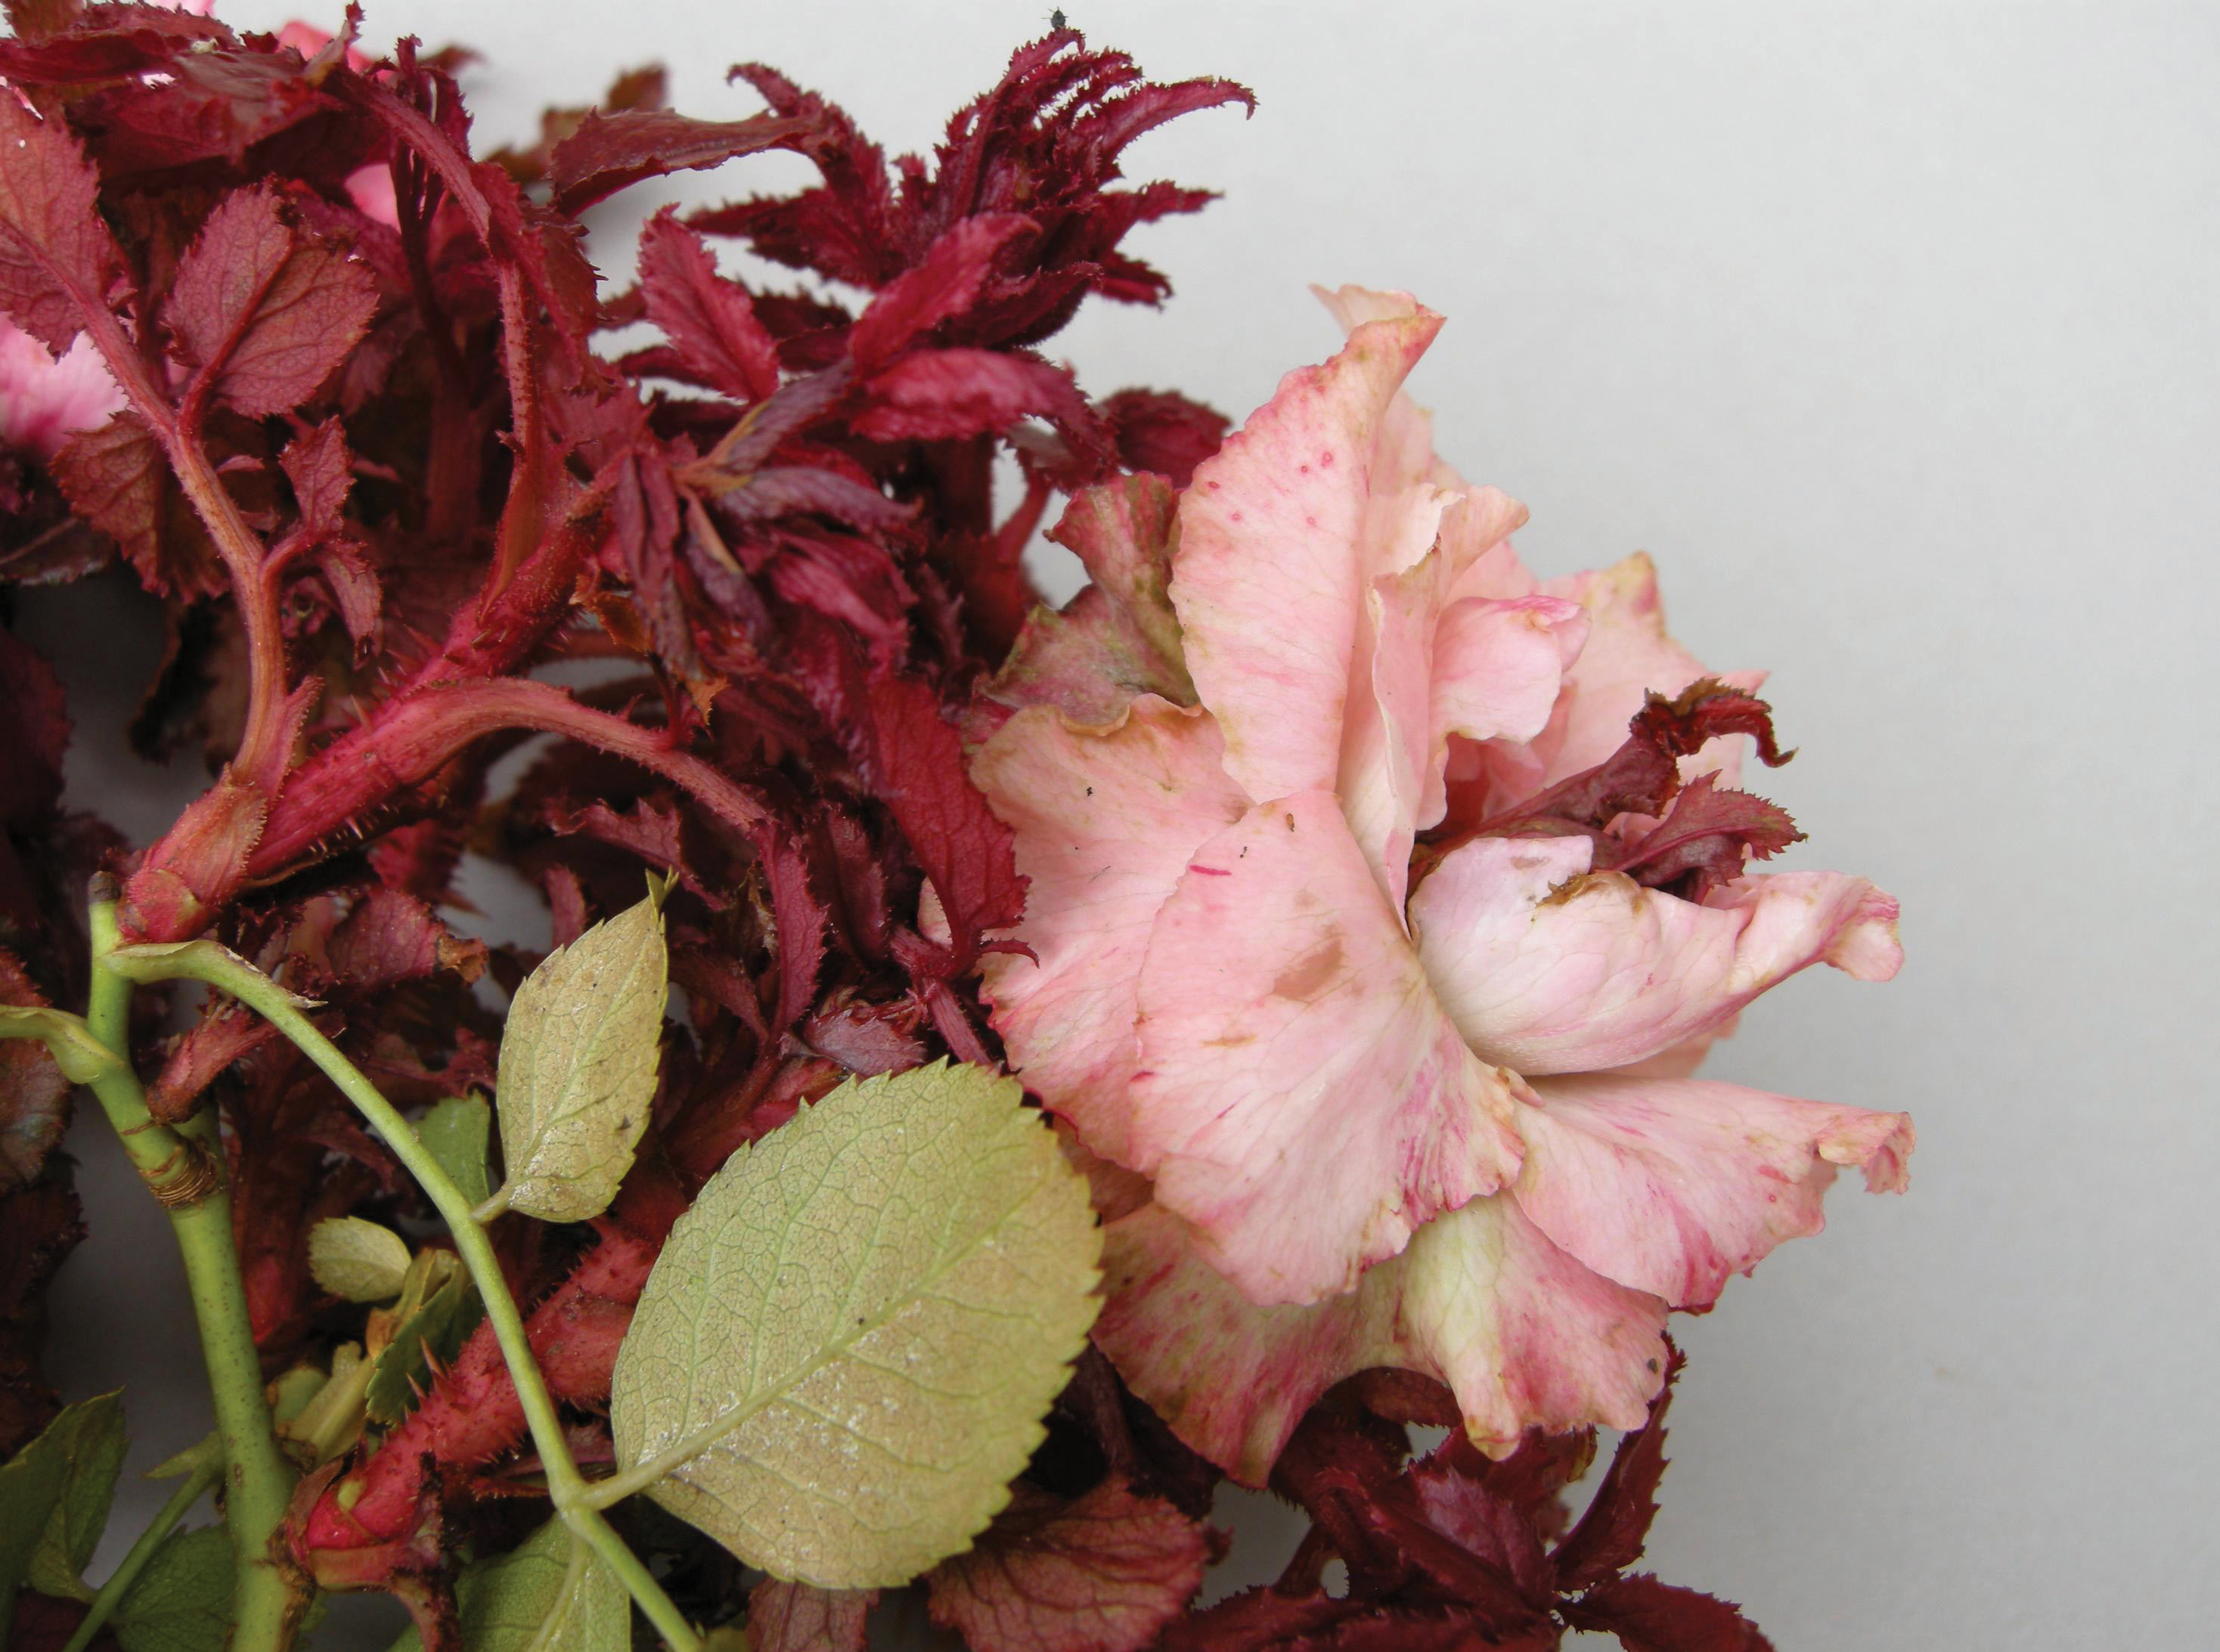 Deadly Rose Rosette Disease Moves Across the Country   State-by ...